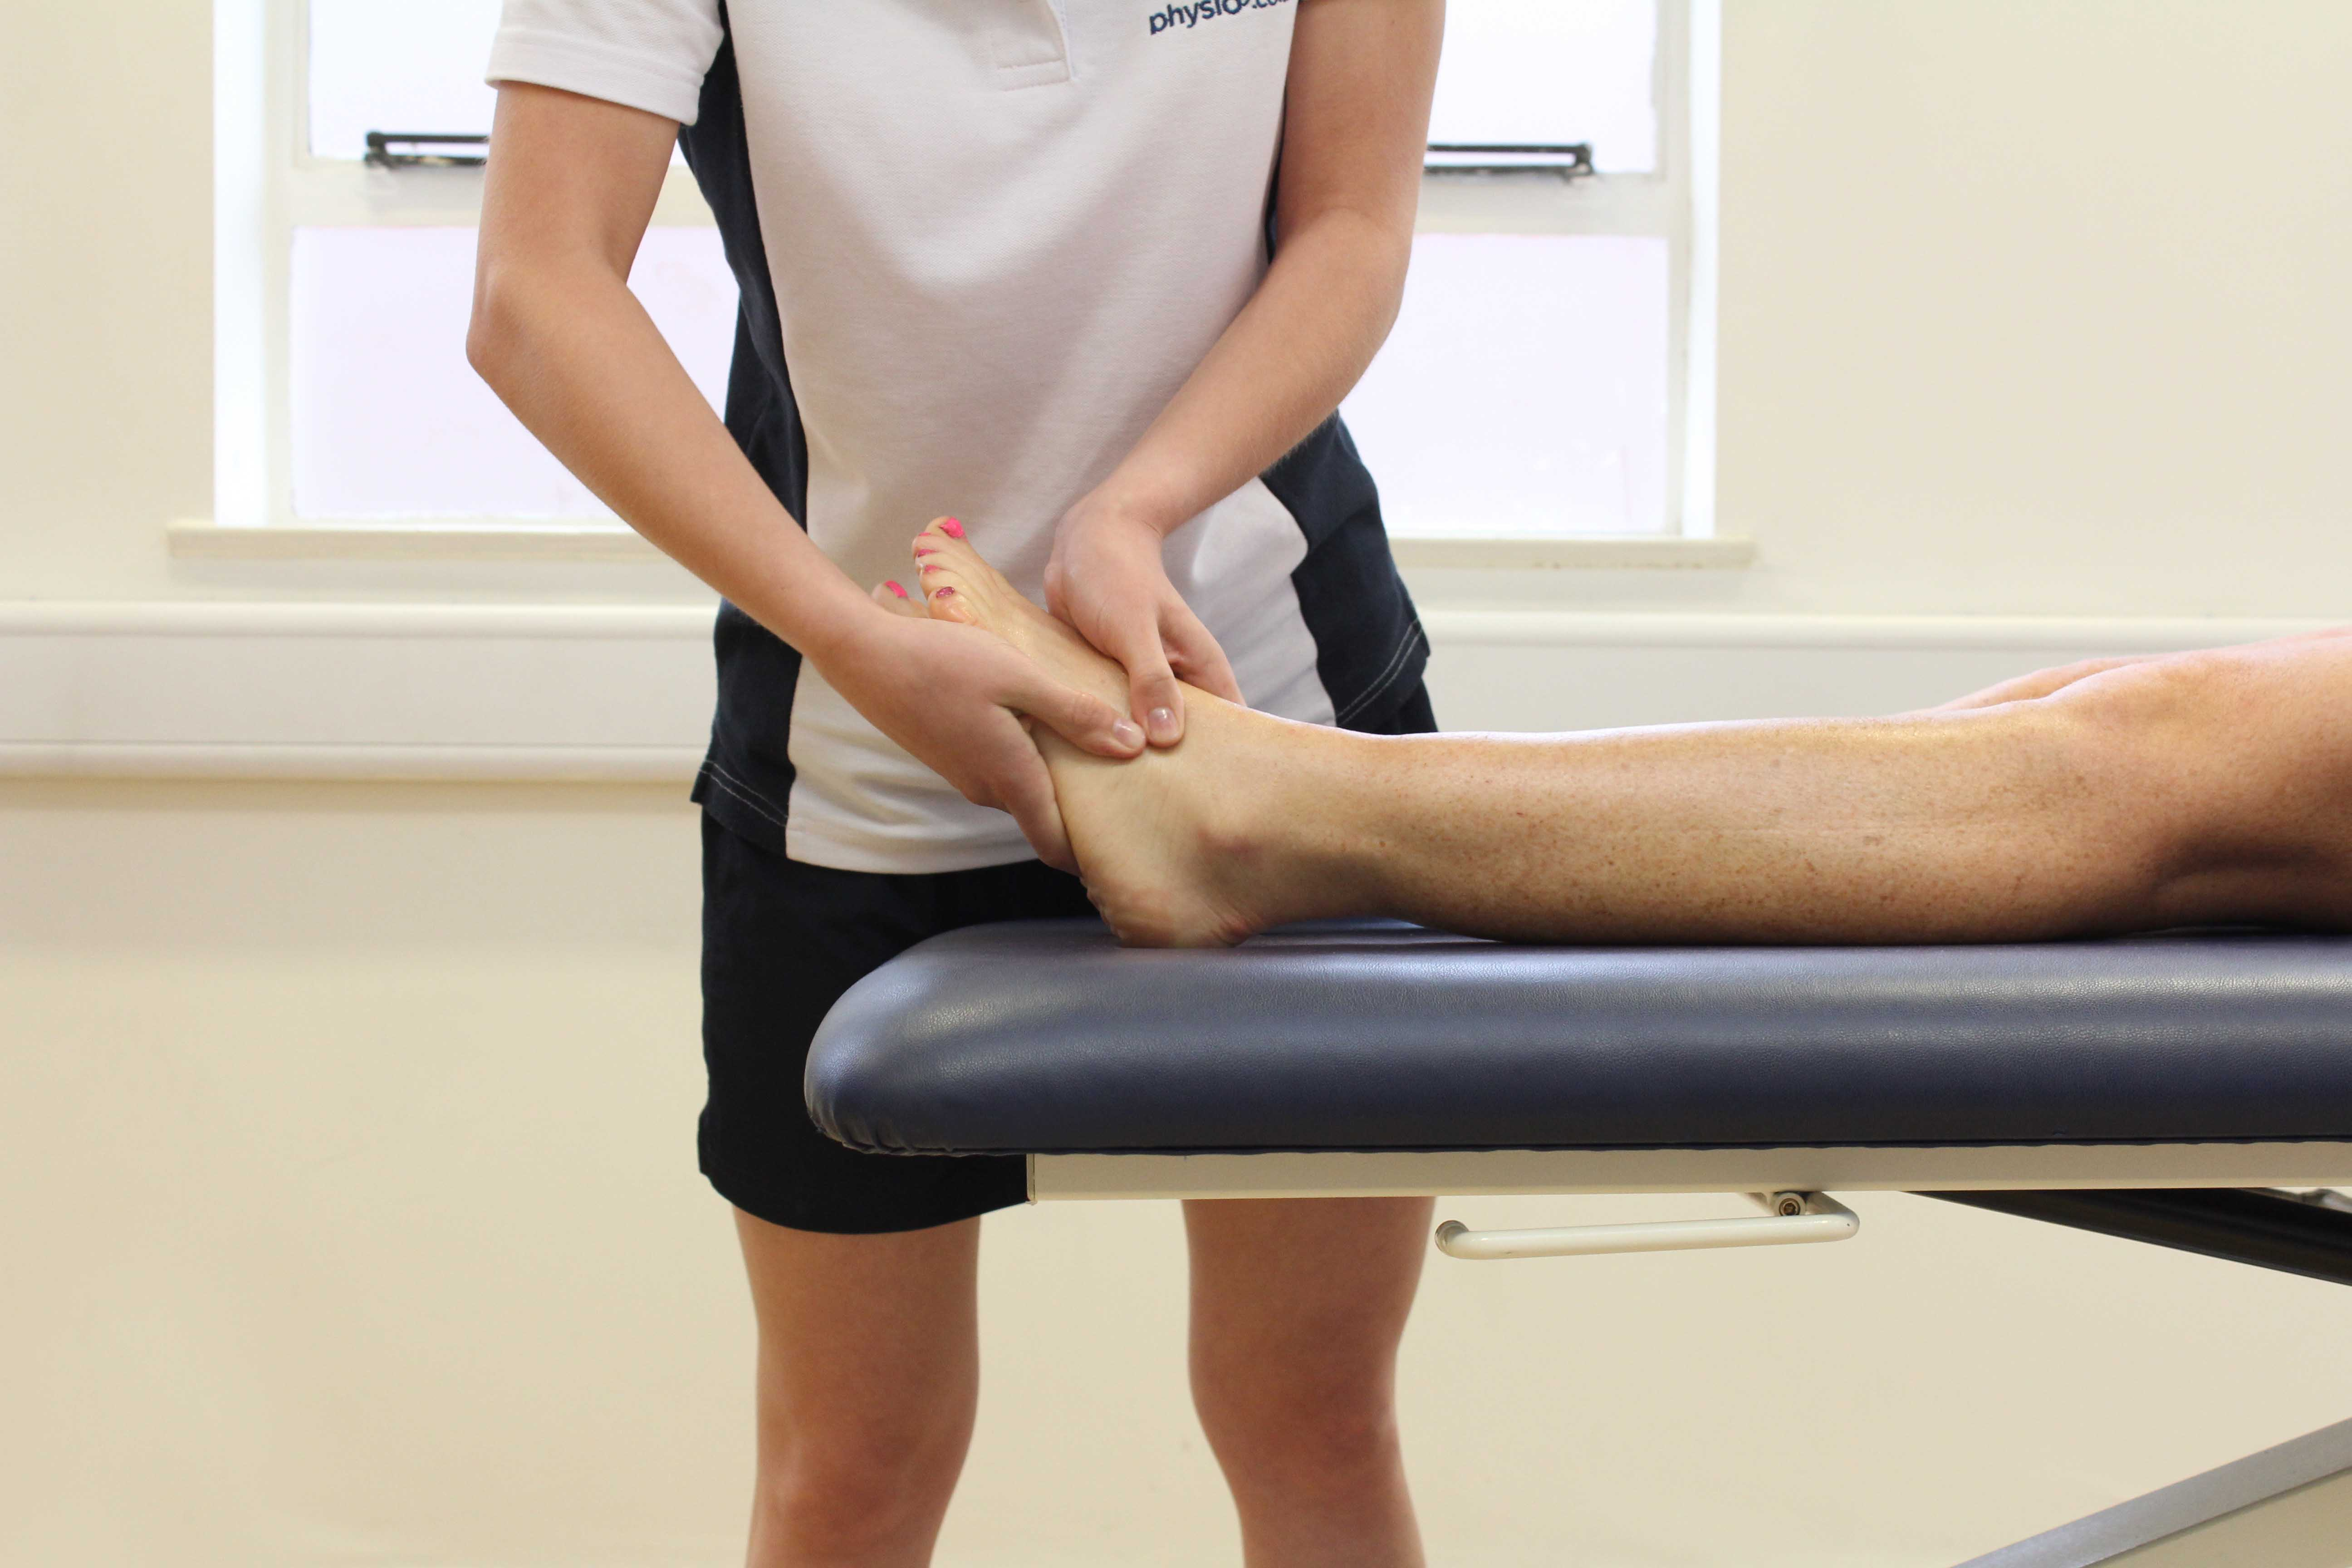 Friction massage applied to the foot by specialist therapist